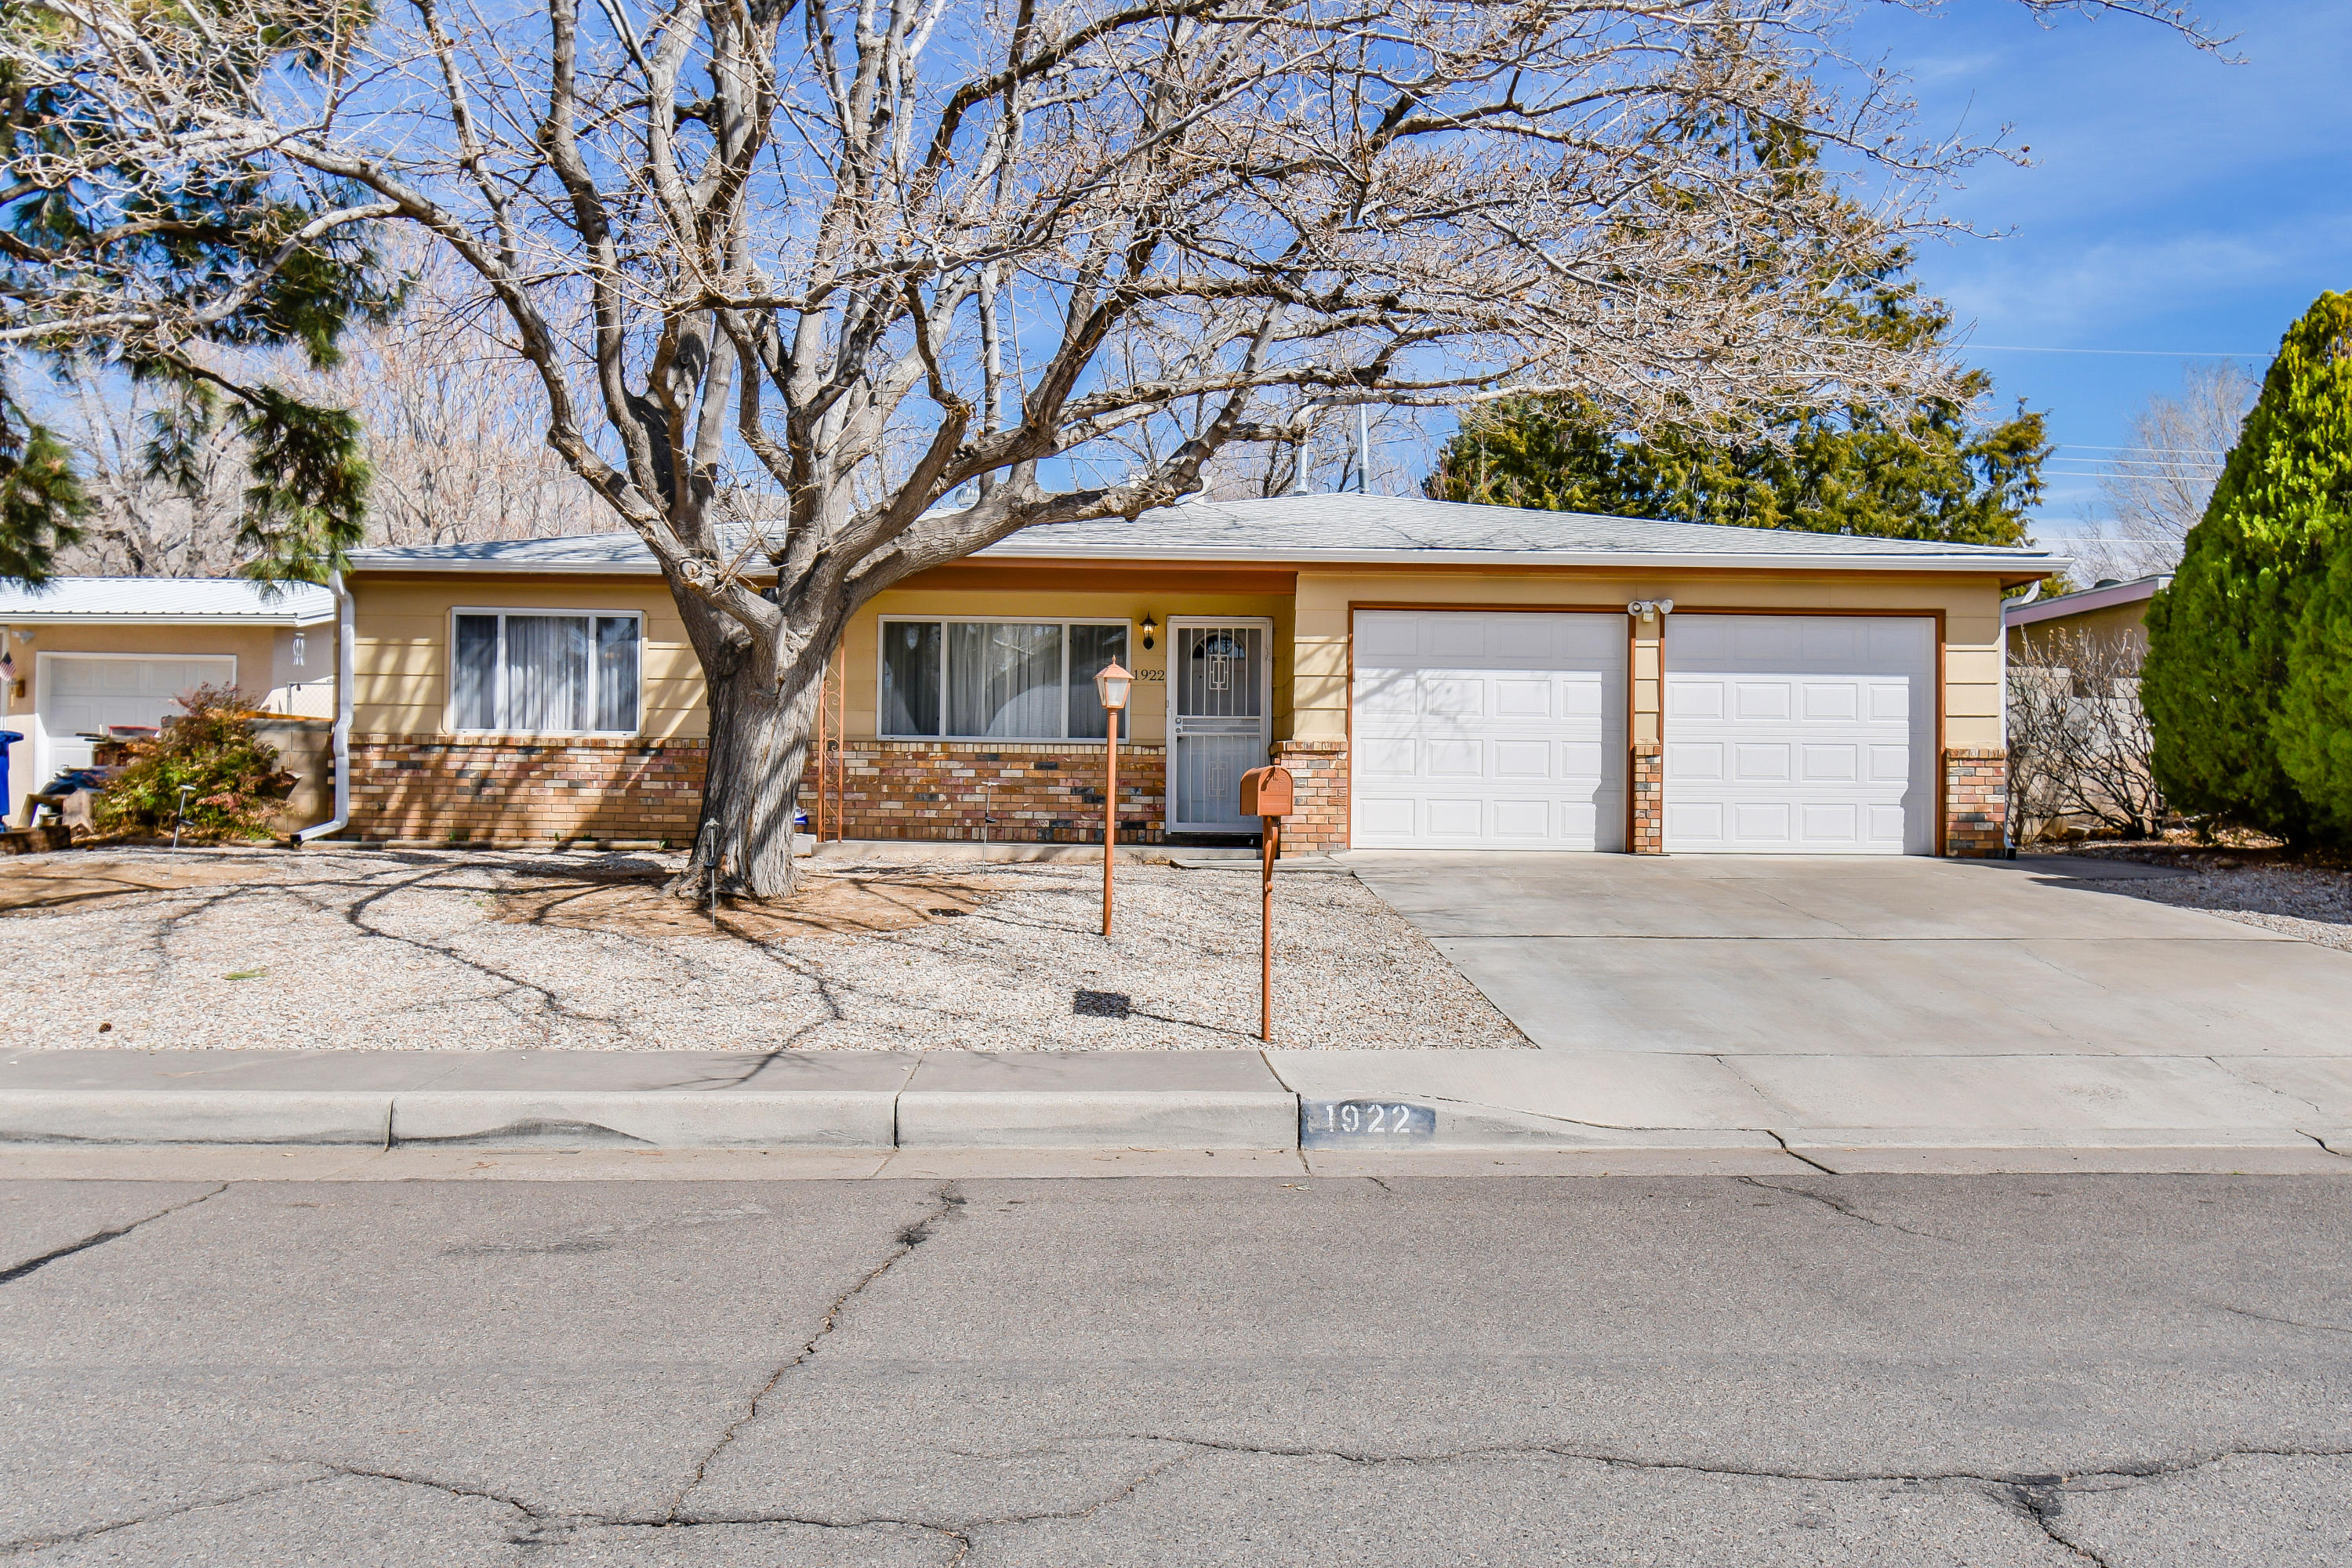 Renovated in 2013!~Wonderful 3 Bedroom Floorplan~Beautiful Open Kitchen~Custom Wood Burning Fireplace~Covered Patio~New Electrical Panel 2013~New Tile & Carpet~Updated Bathrooms~2 Car Garage~Quiet Cul-de-Sac~Newer Hot water Heater & Furnace~Newer Windows~ AC 2019, Water heater 2018, Roof 2018, Garage Doors 2018, Brick Pavers 2020 ~Convenient location and amenities.